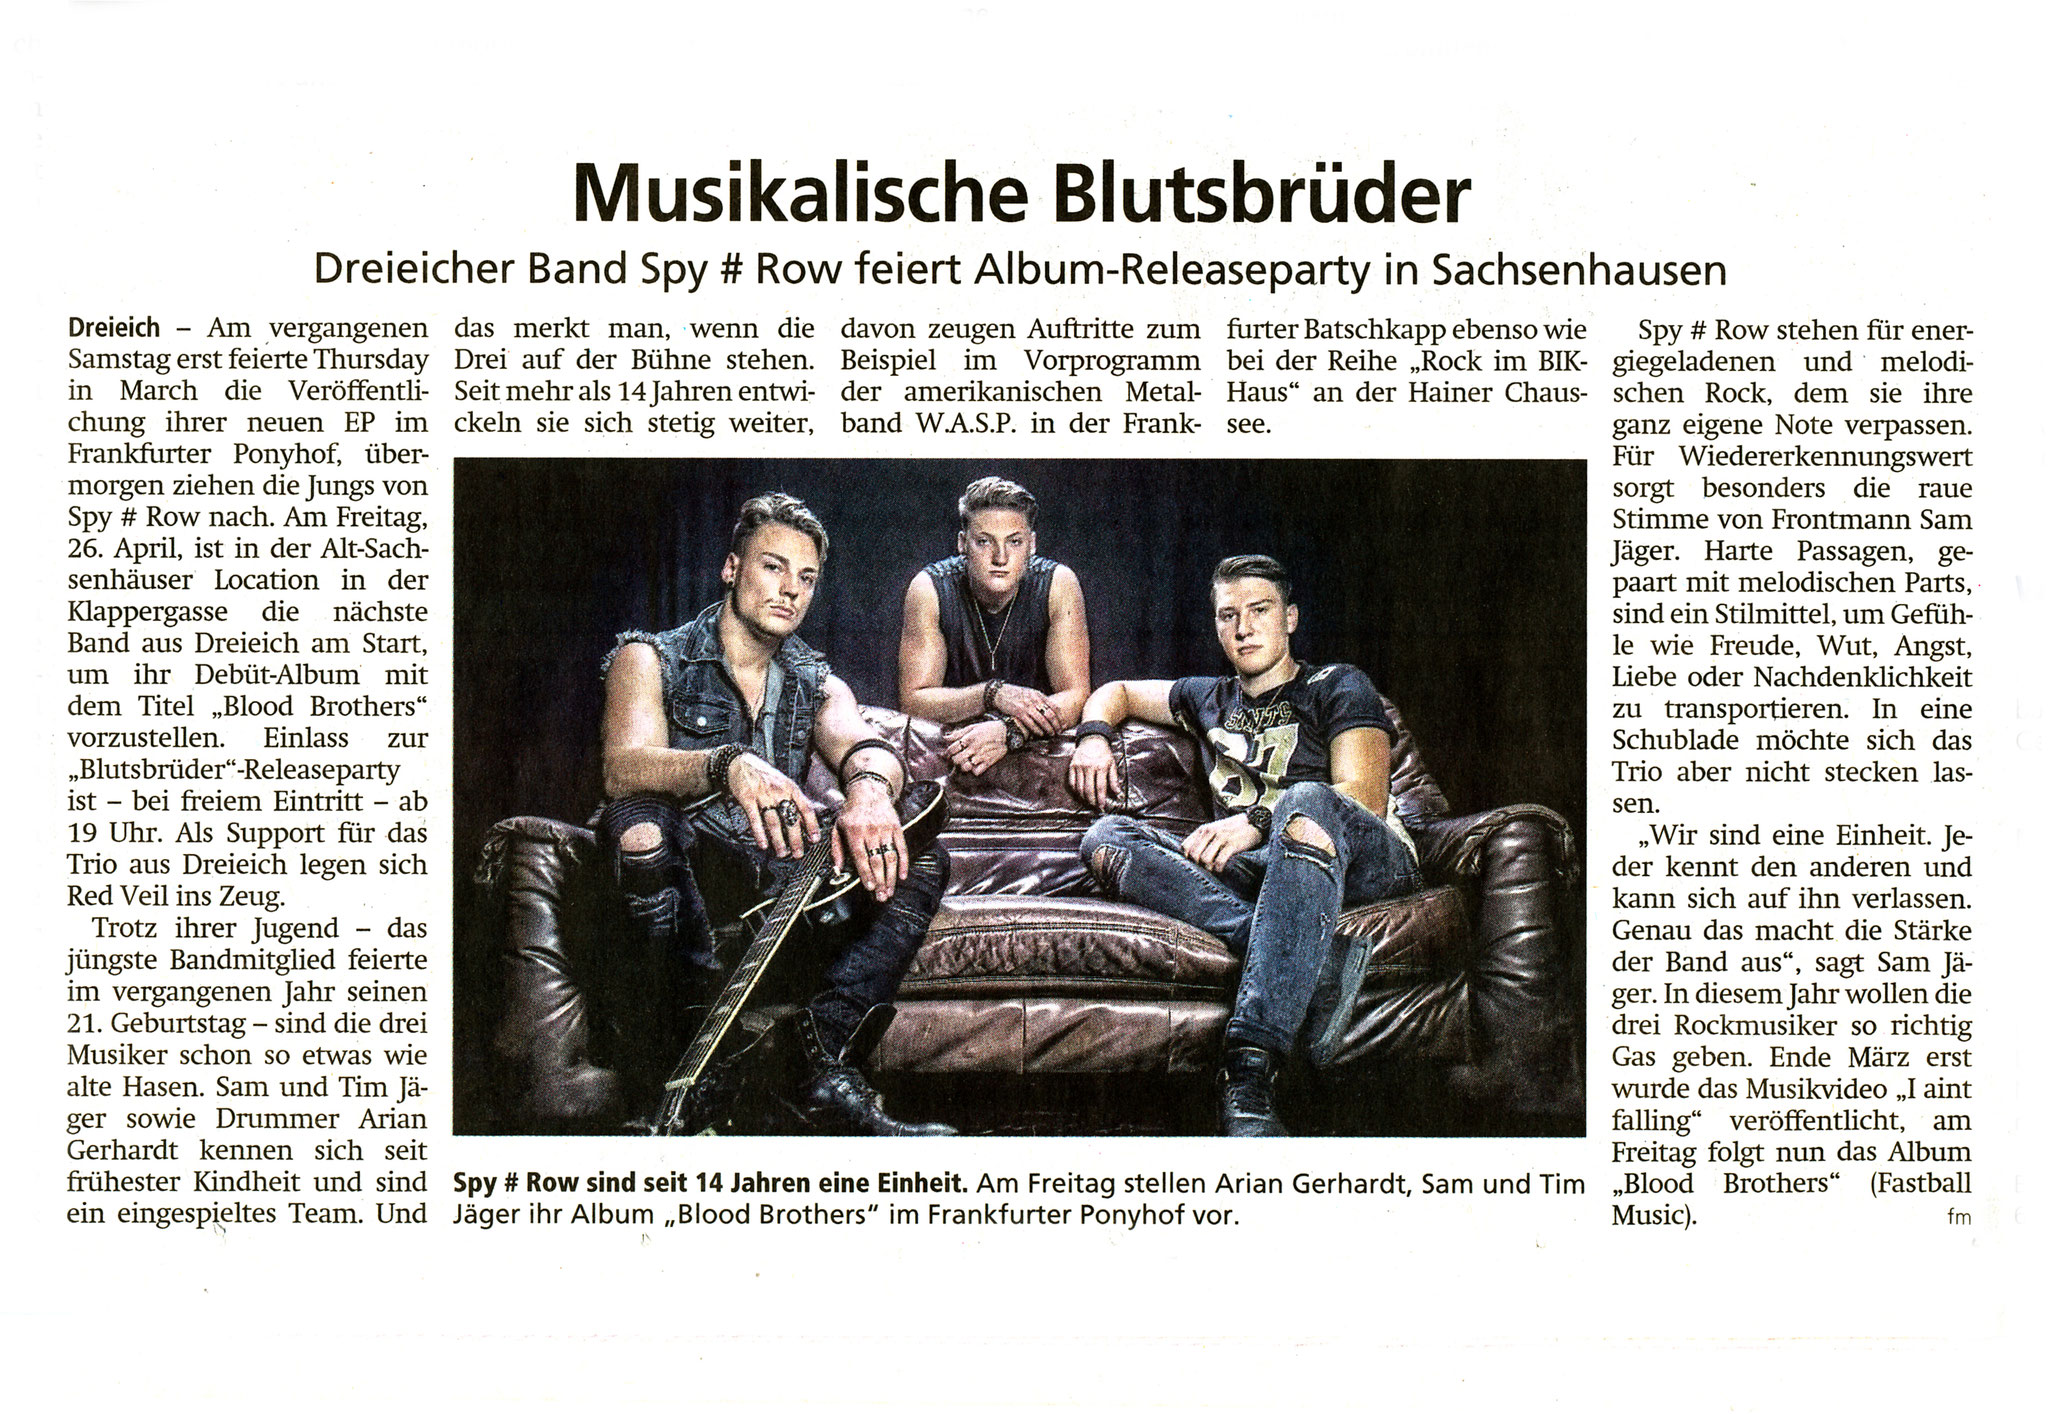 Offenbach Post, 24. April 2019